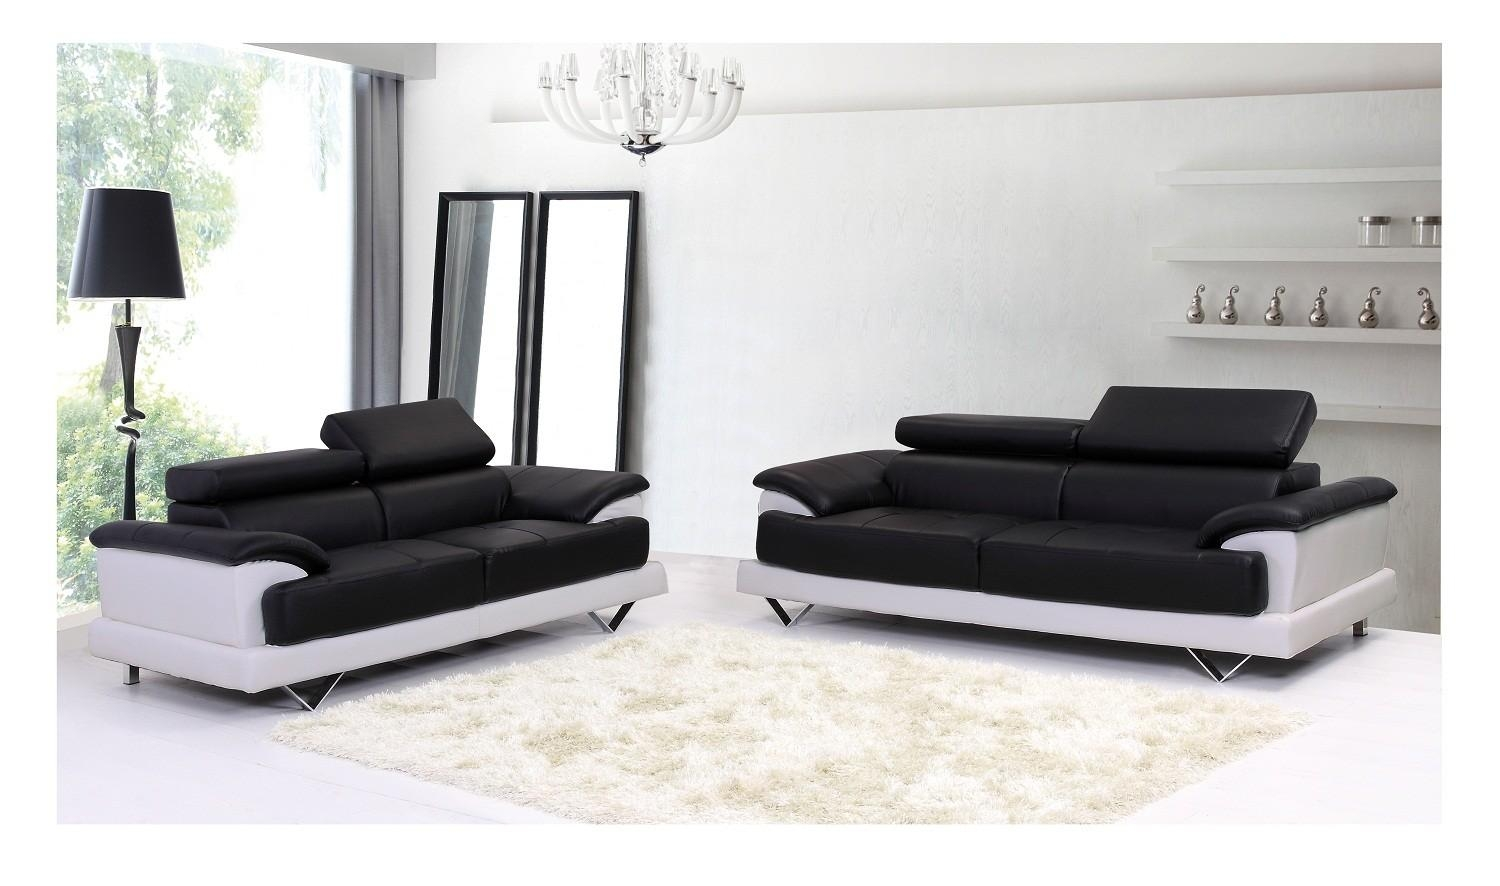 Black And White Leather Sofa | Sofa Gallery | Kengire Pertaining To Black And White Sofas (View 4 of 20)